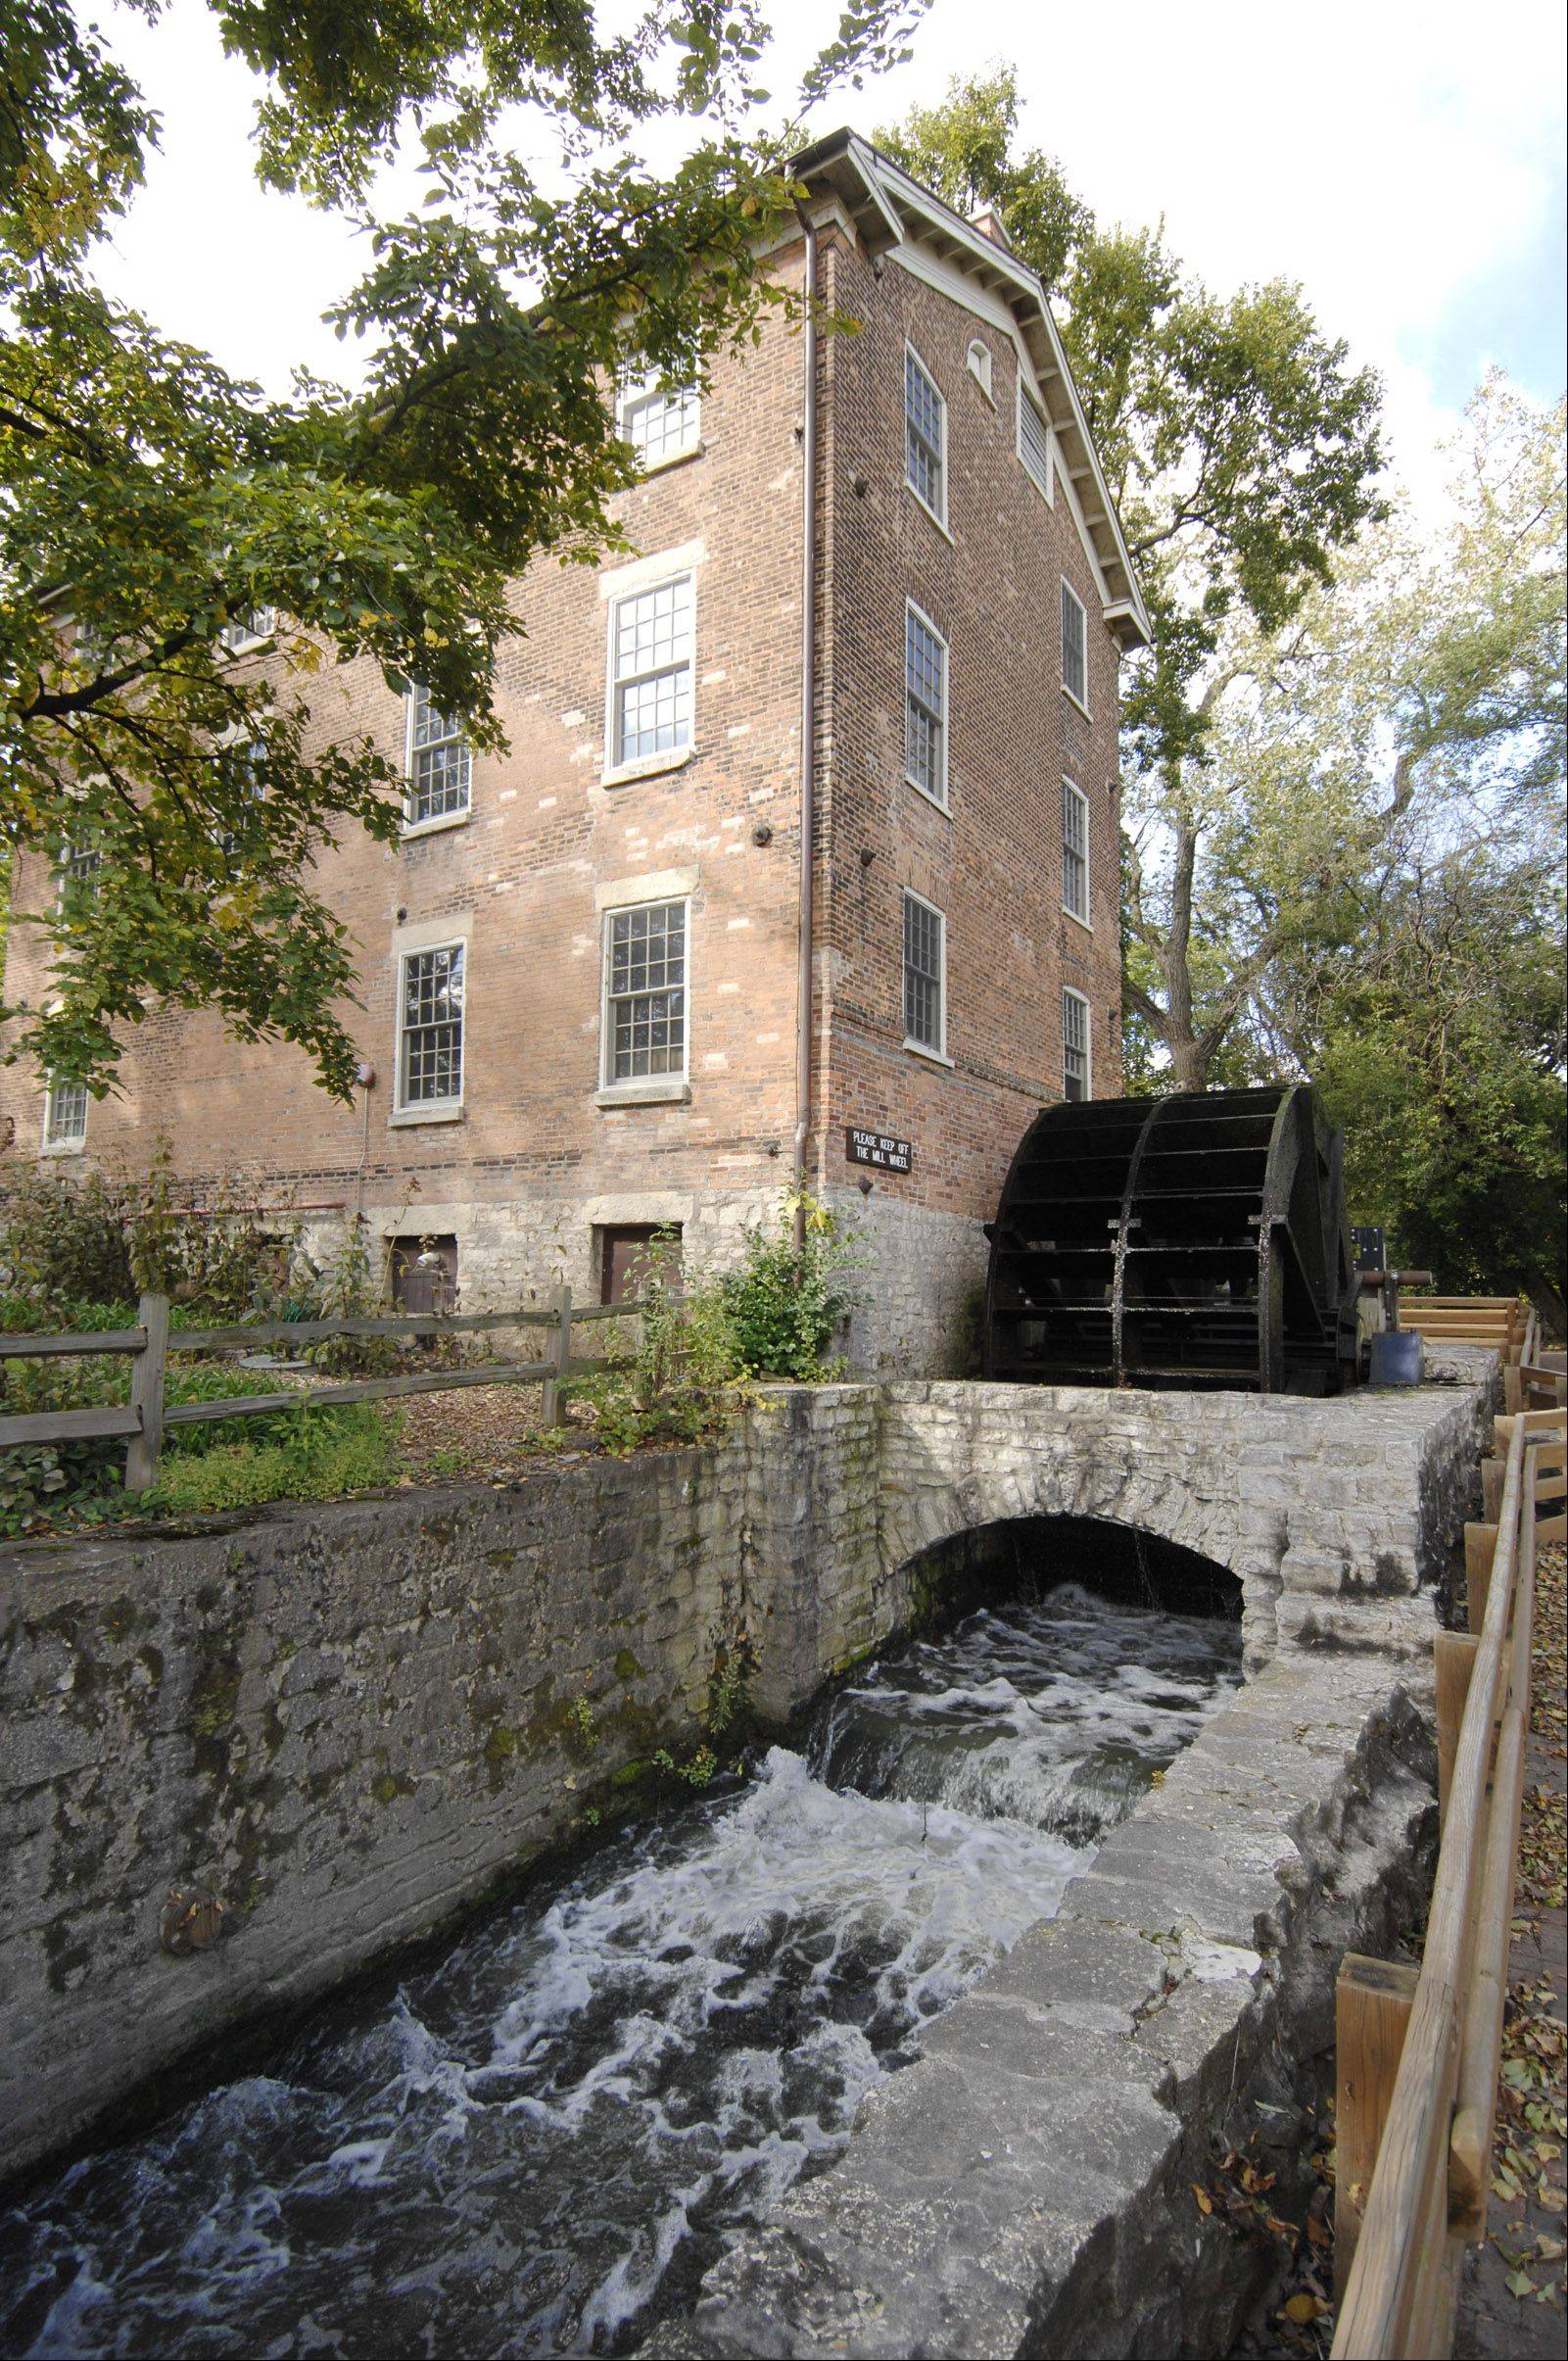 More long-term repairs needed for historic Graue Mill